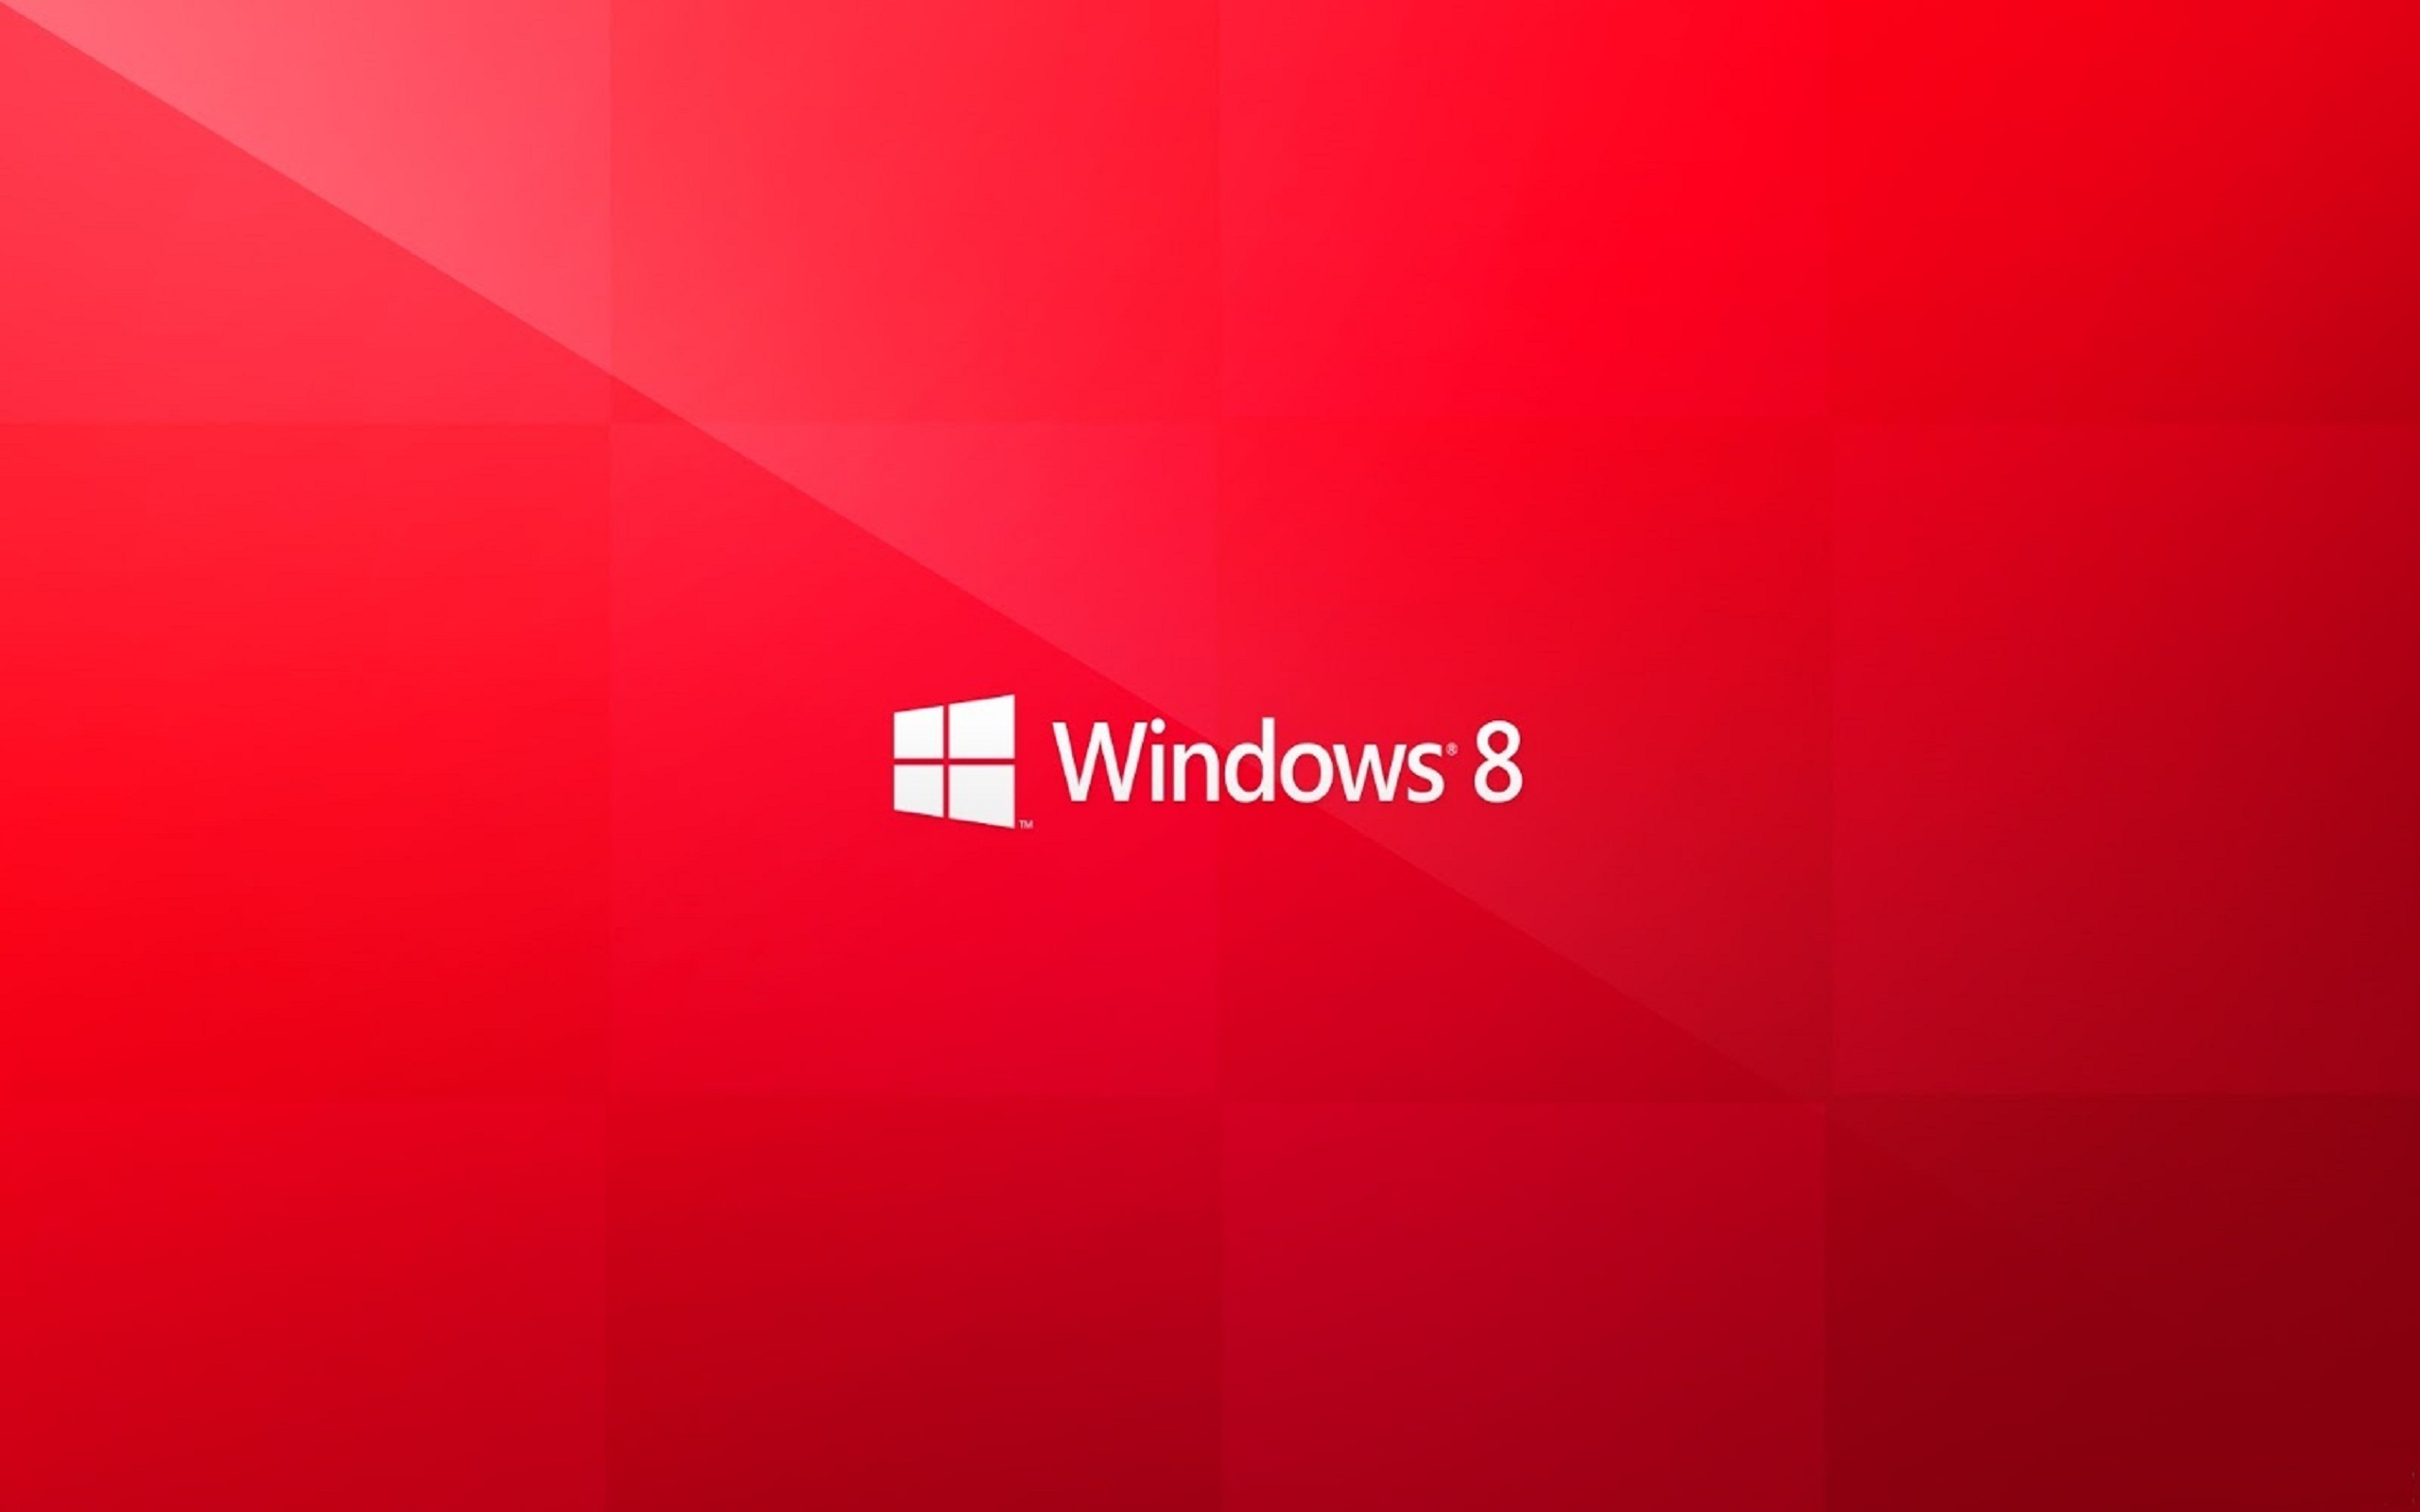 Red Pink Color Windows 8 Wallpaper   HD Wallpapers